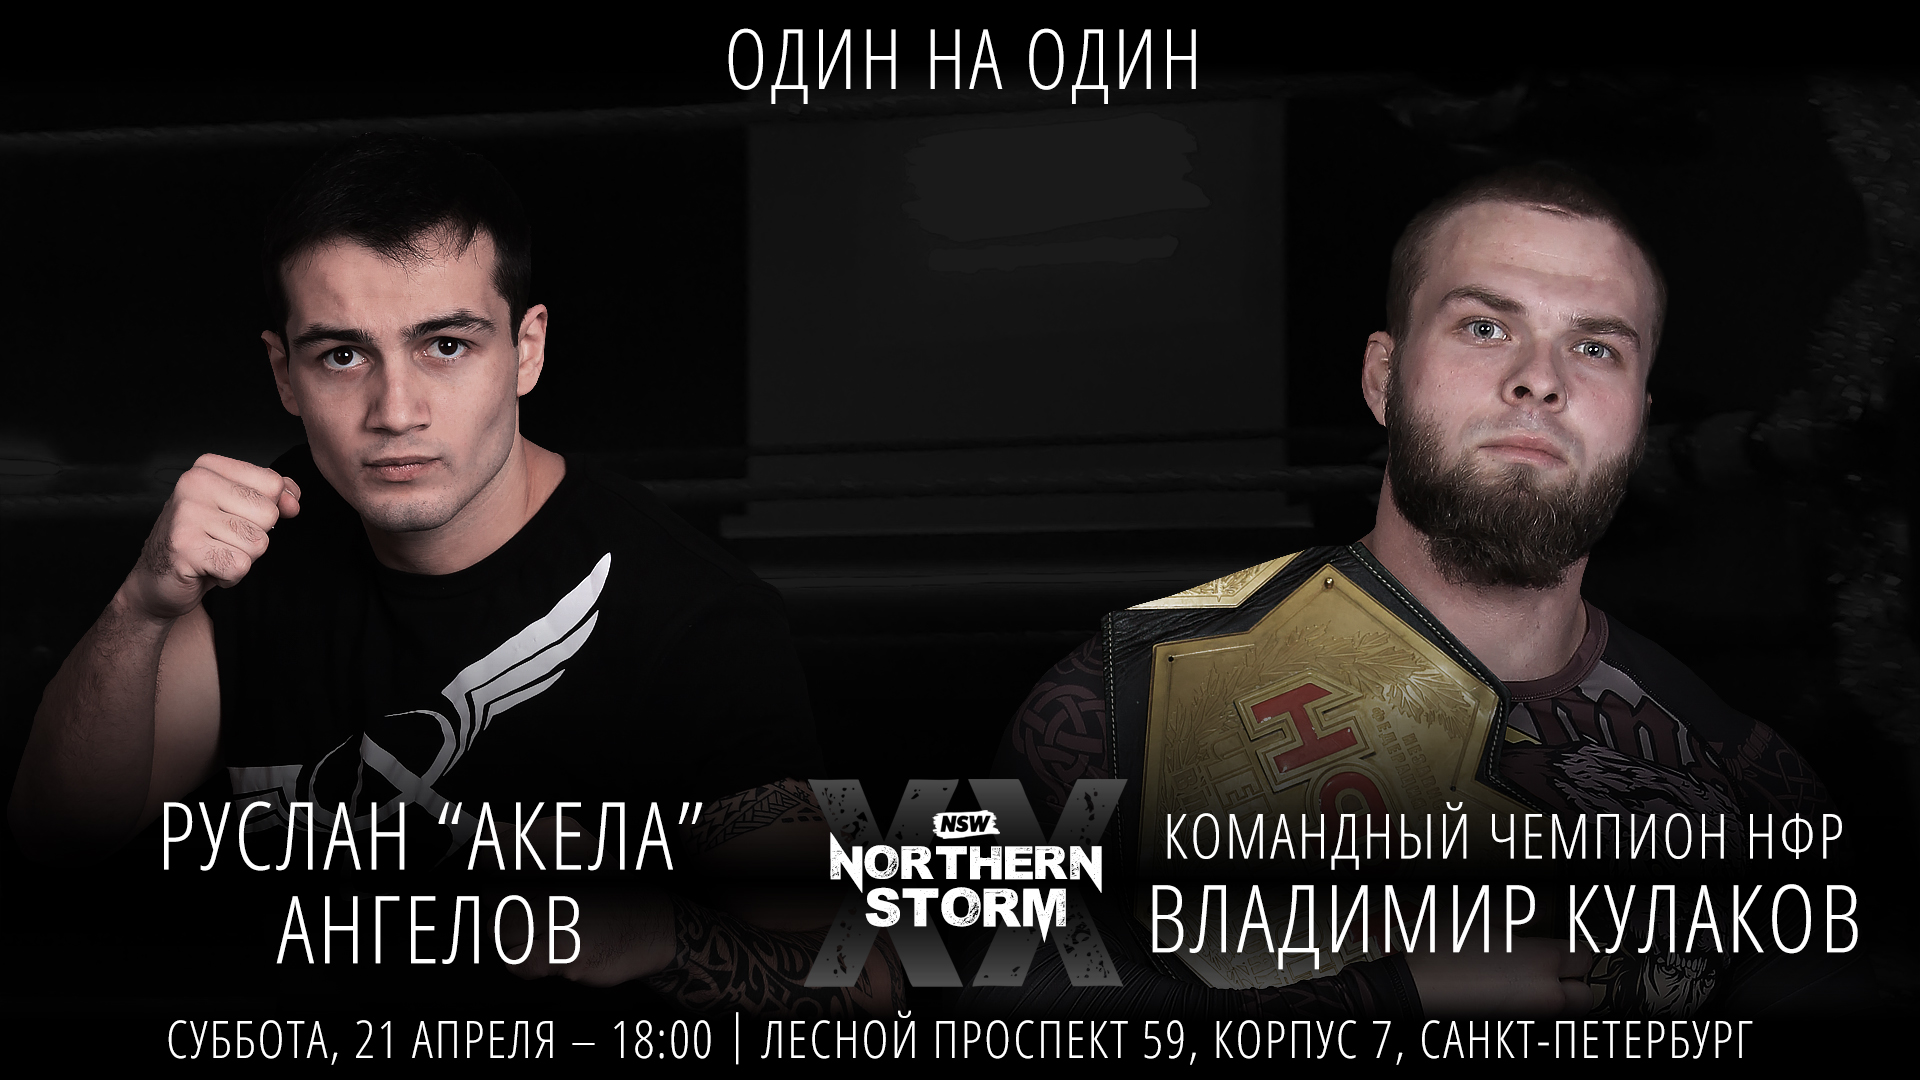 NSW Northern Storm XX: Руслан «Акела» Ангелов против Владимира Кулакова